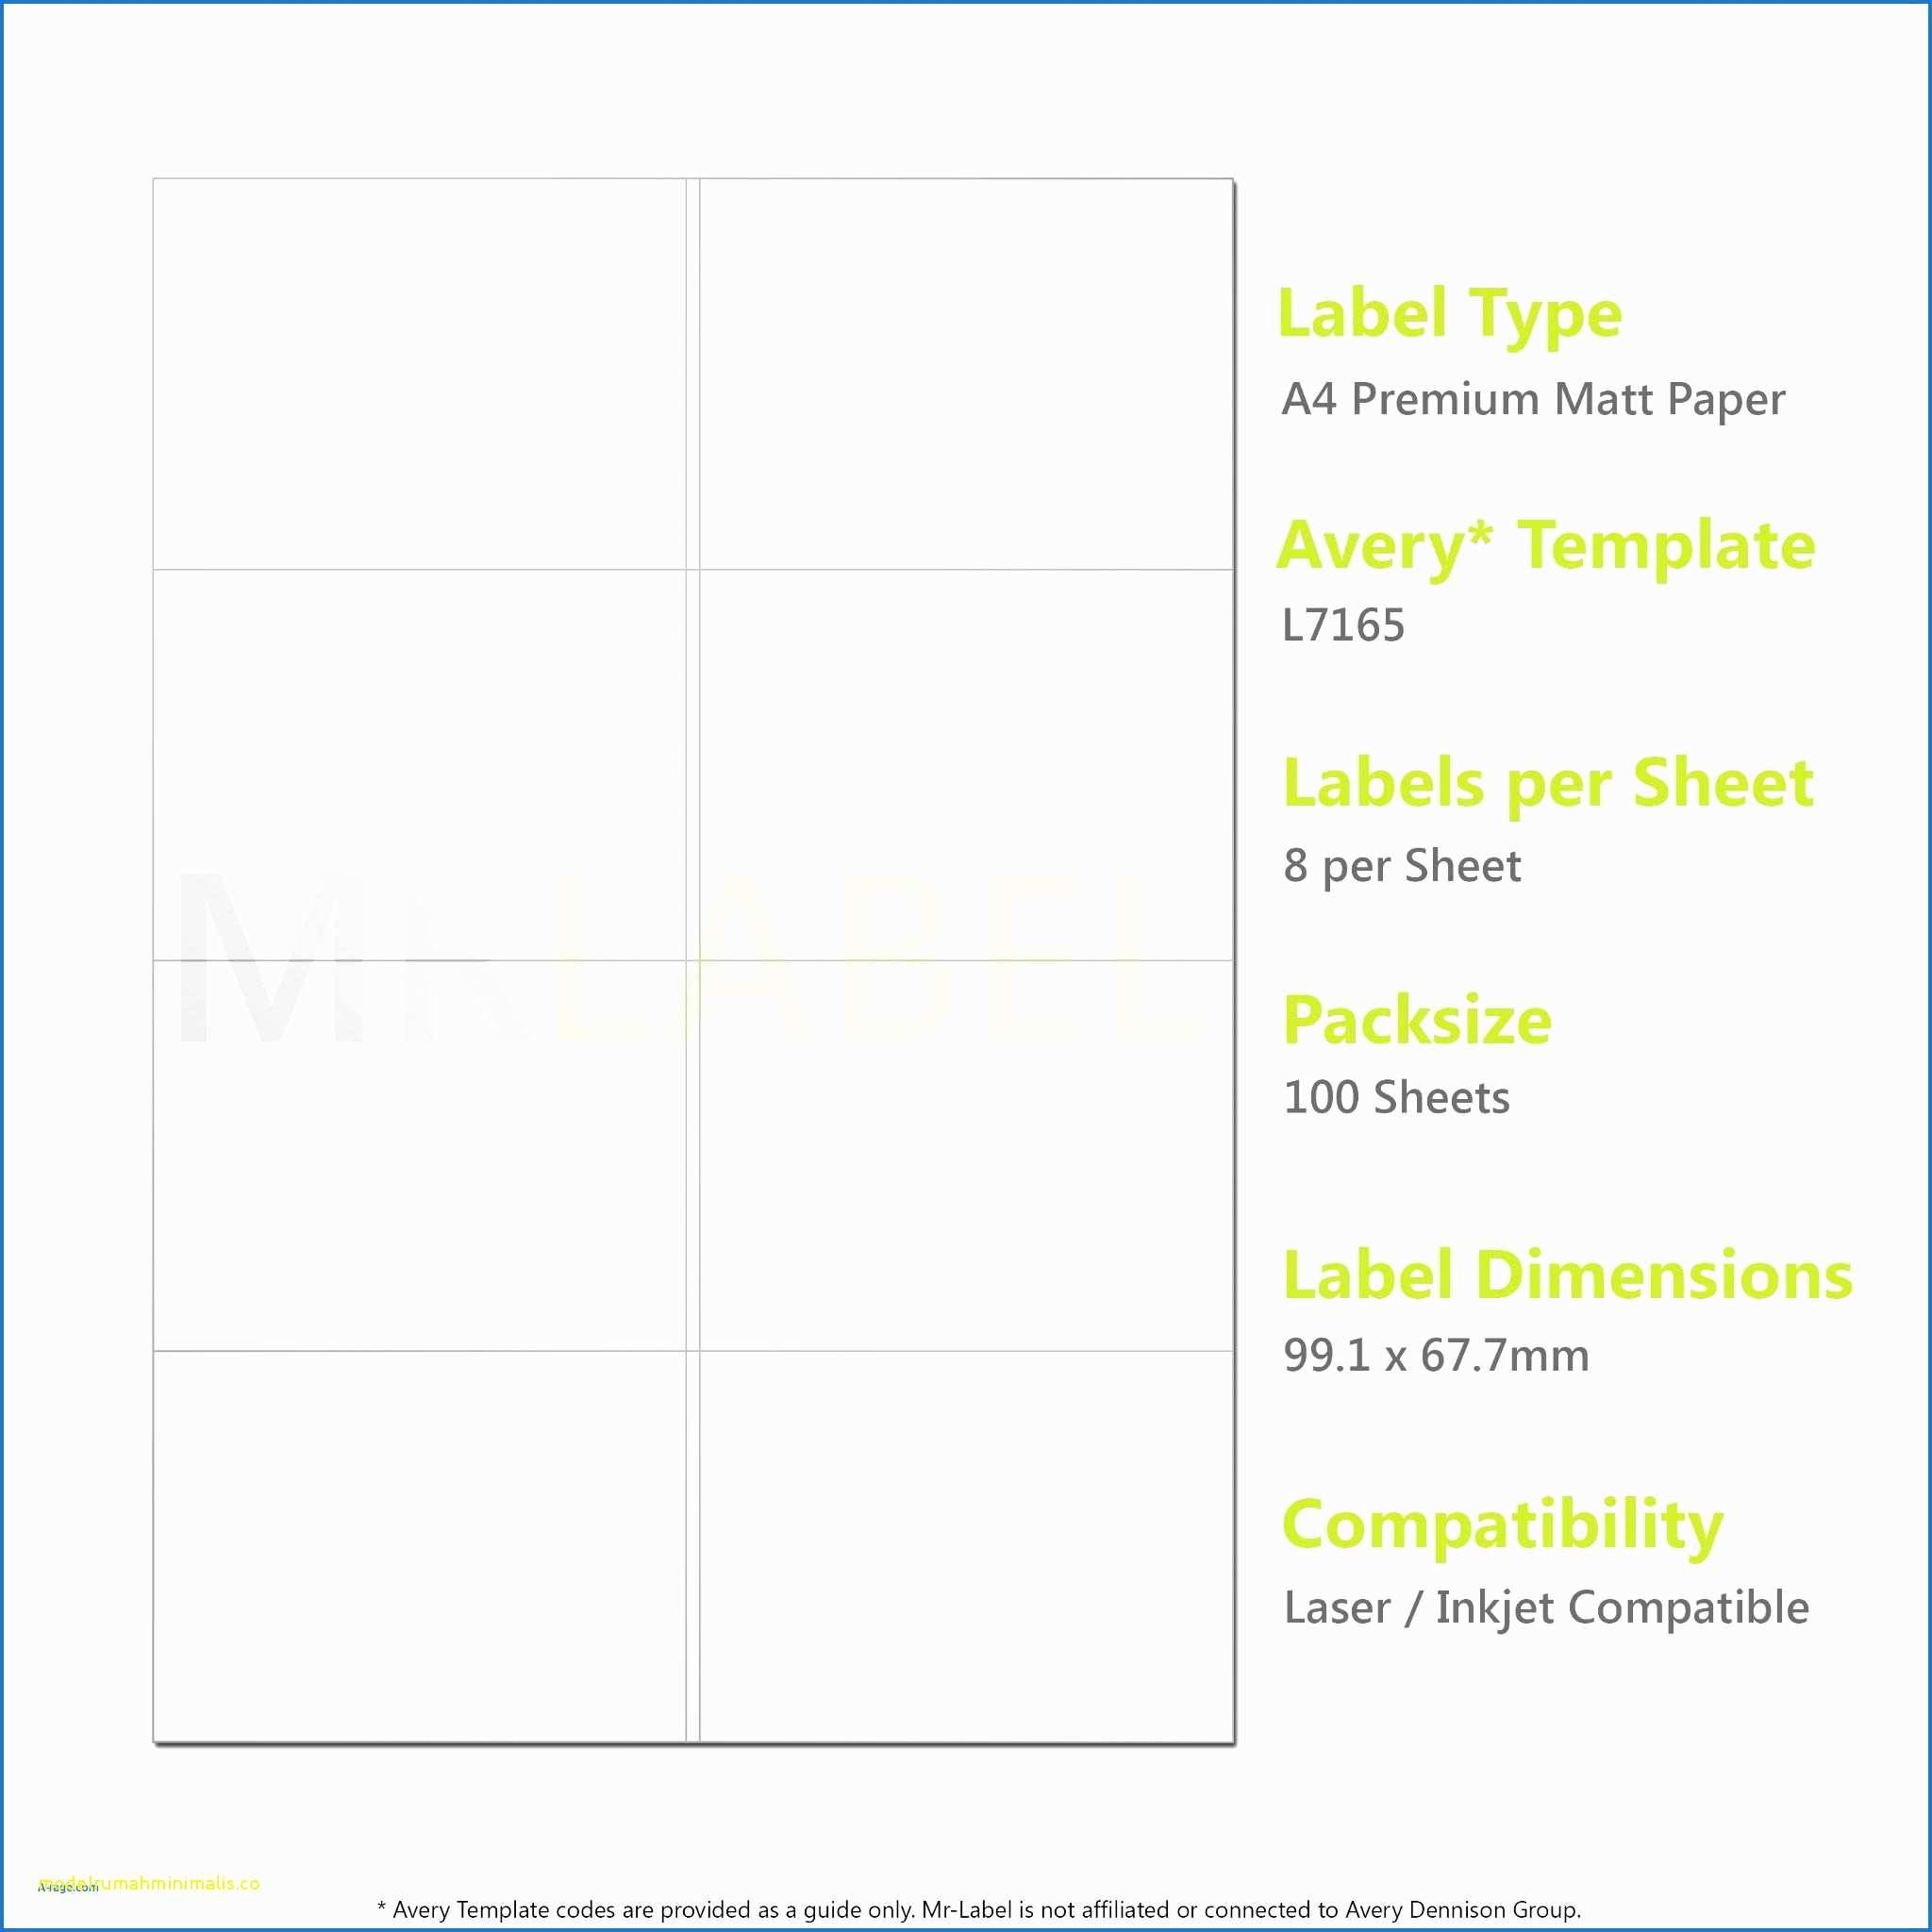 Templates For Avery Labels 5163